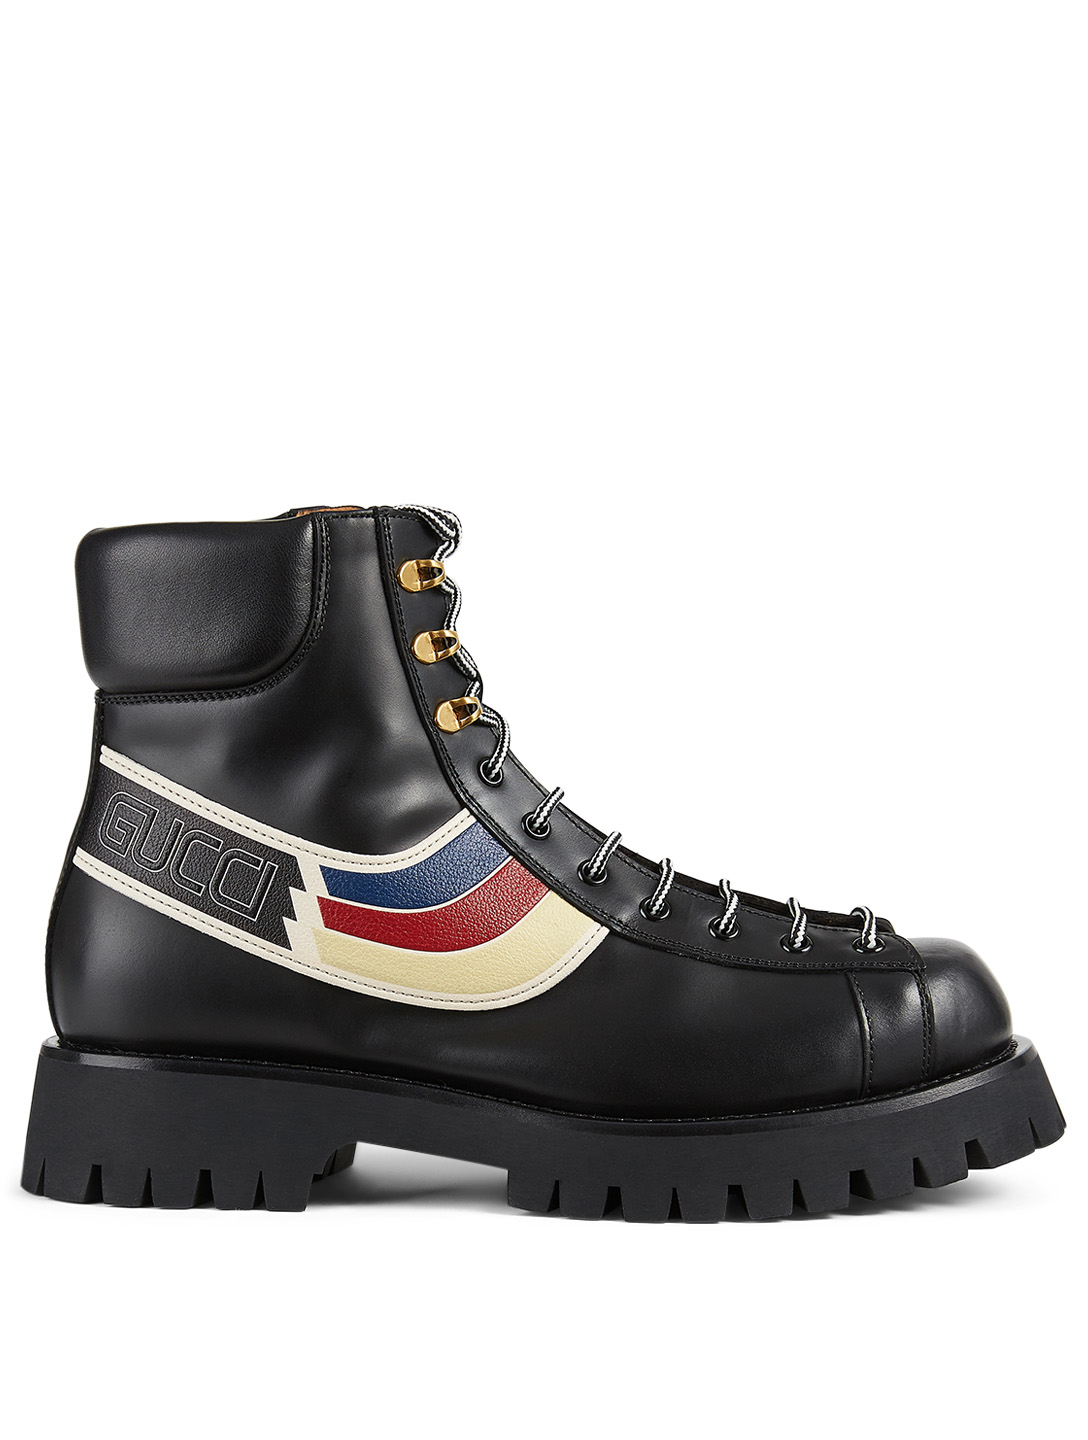 GUCCI Leather Lace-Up Ankle Boots With Sylvie Web Men's Black